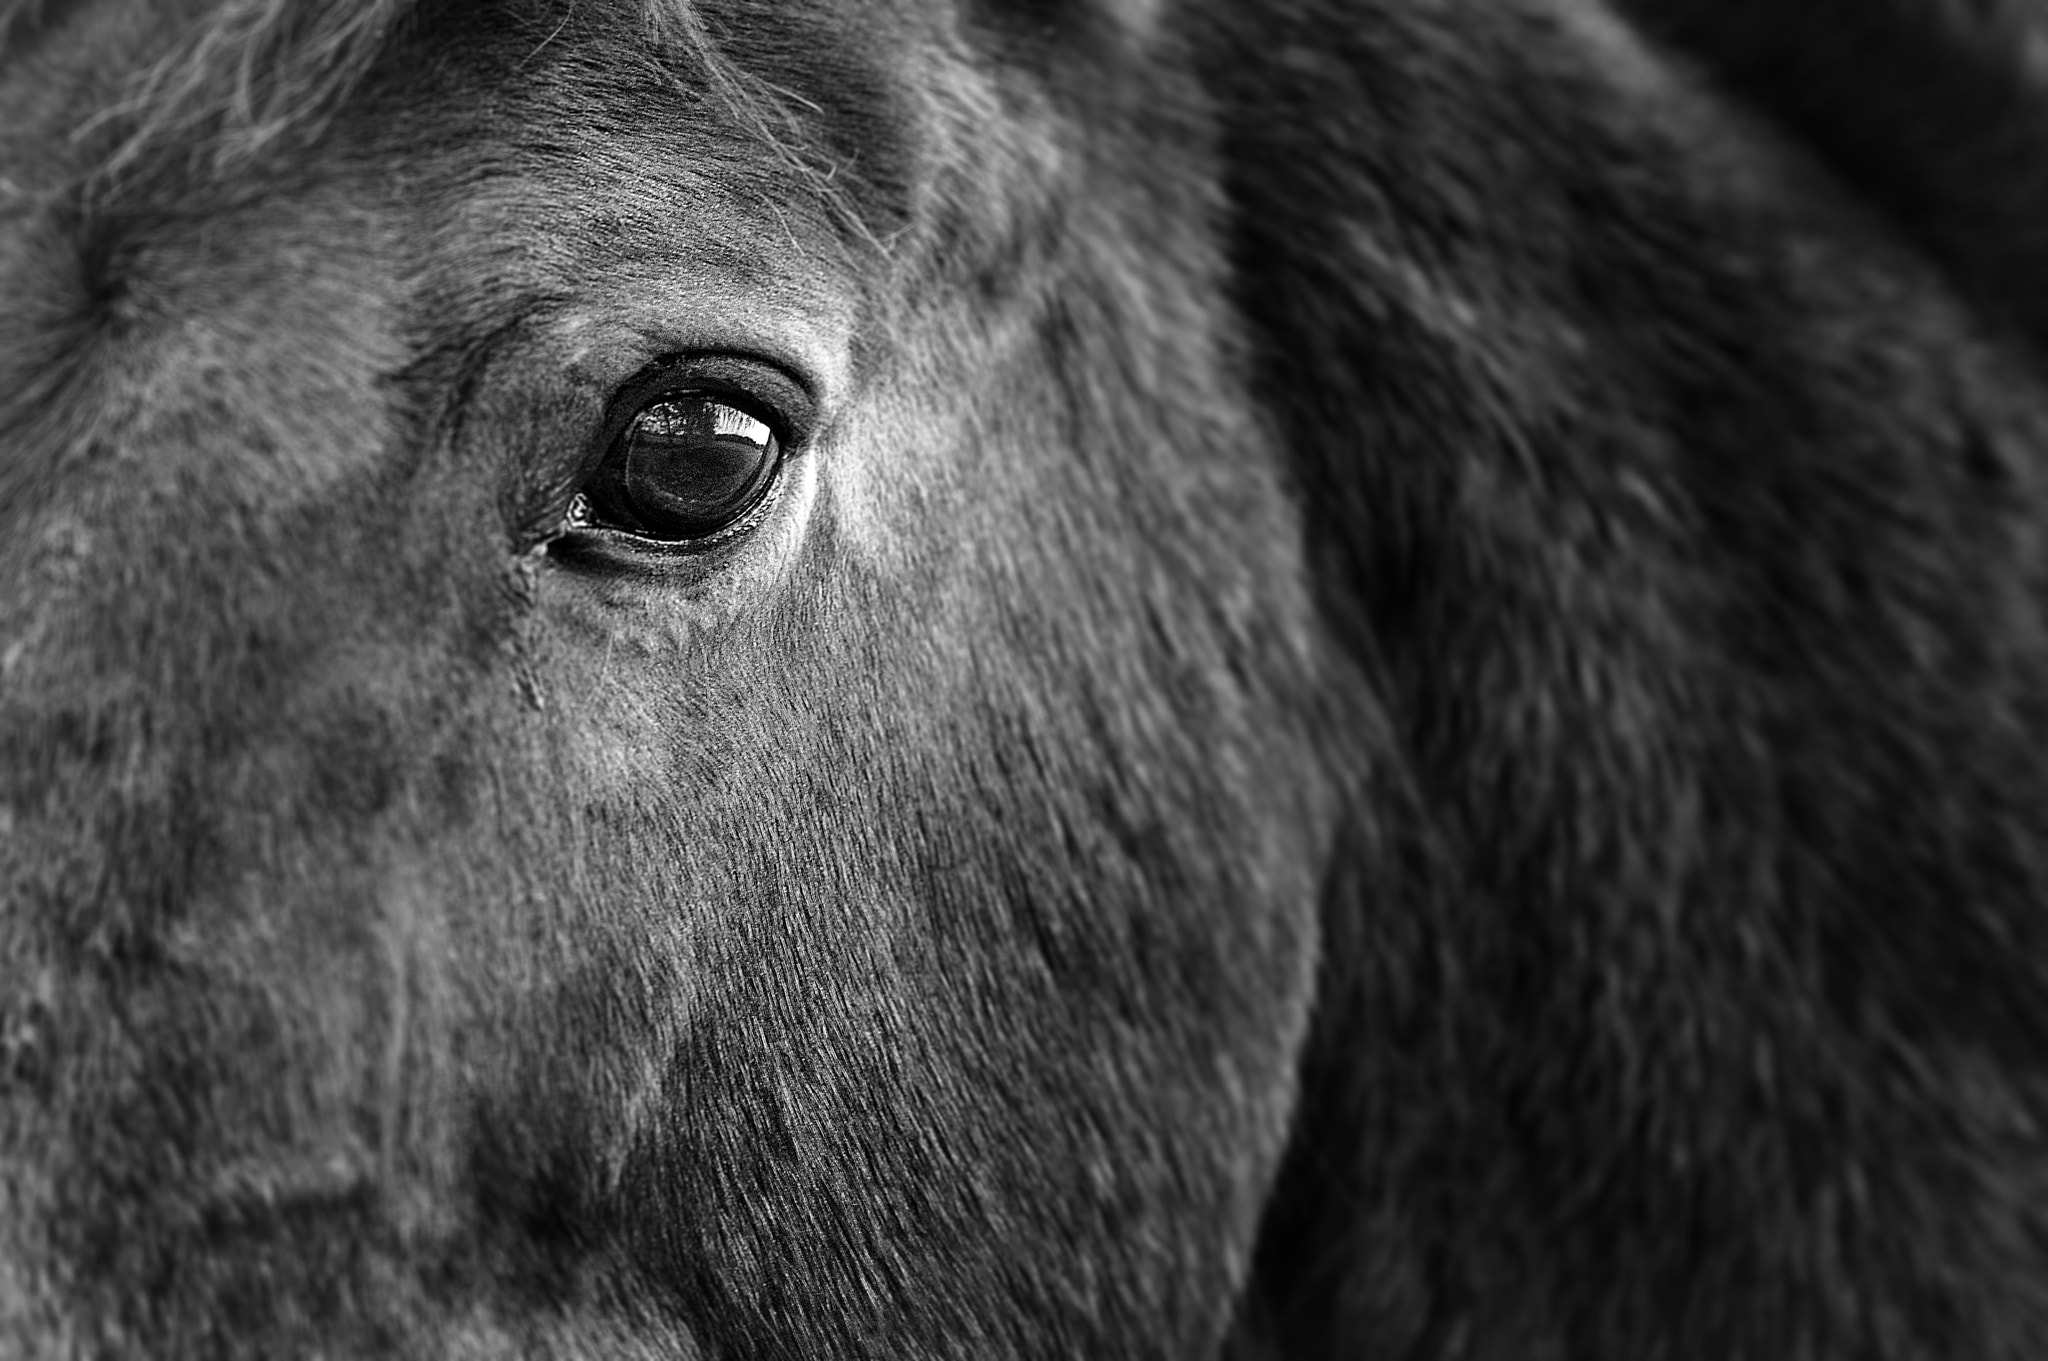 Photograph Eye of the Beast by David Havenhand on 500px